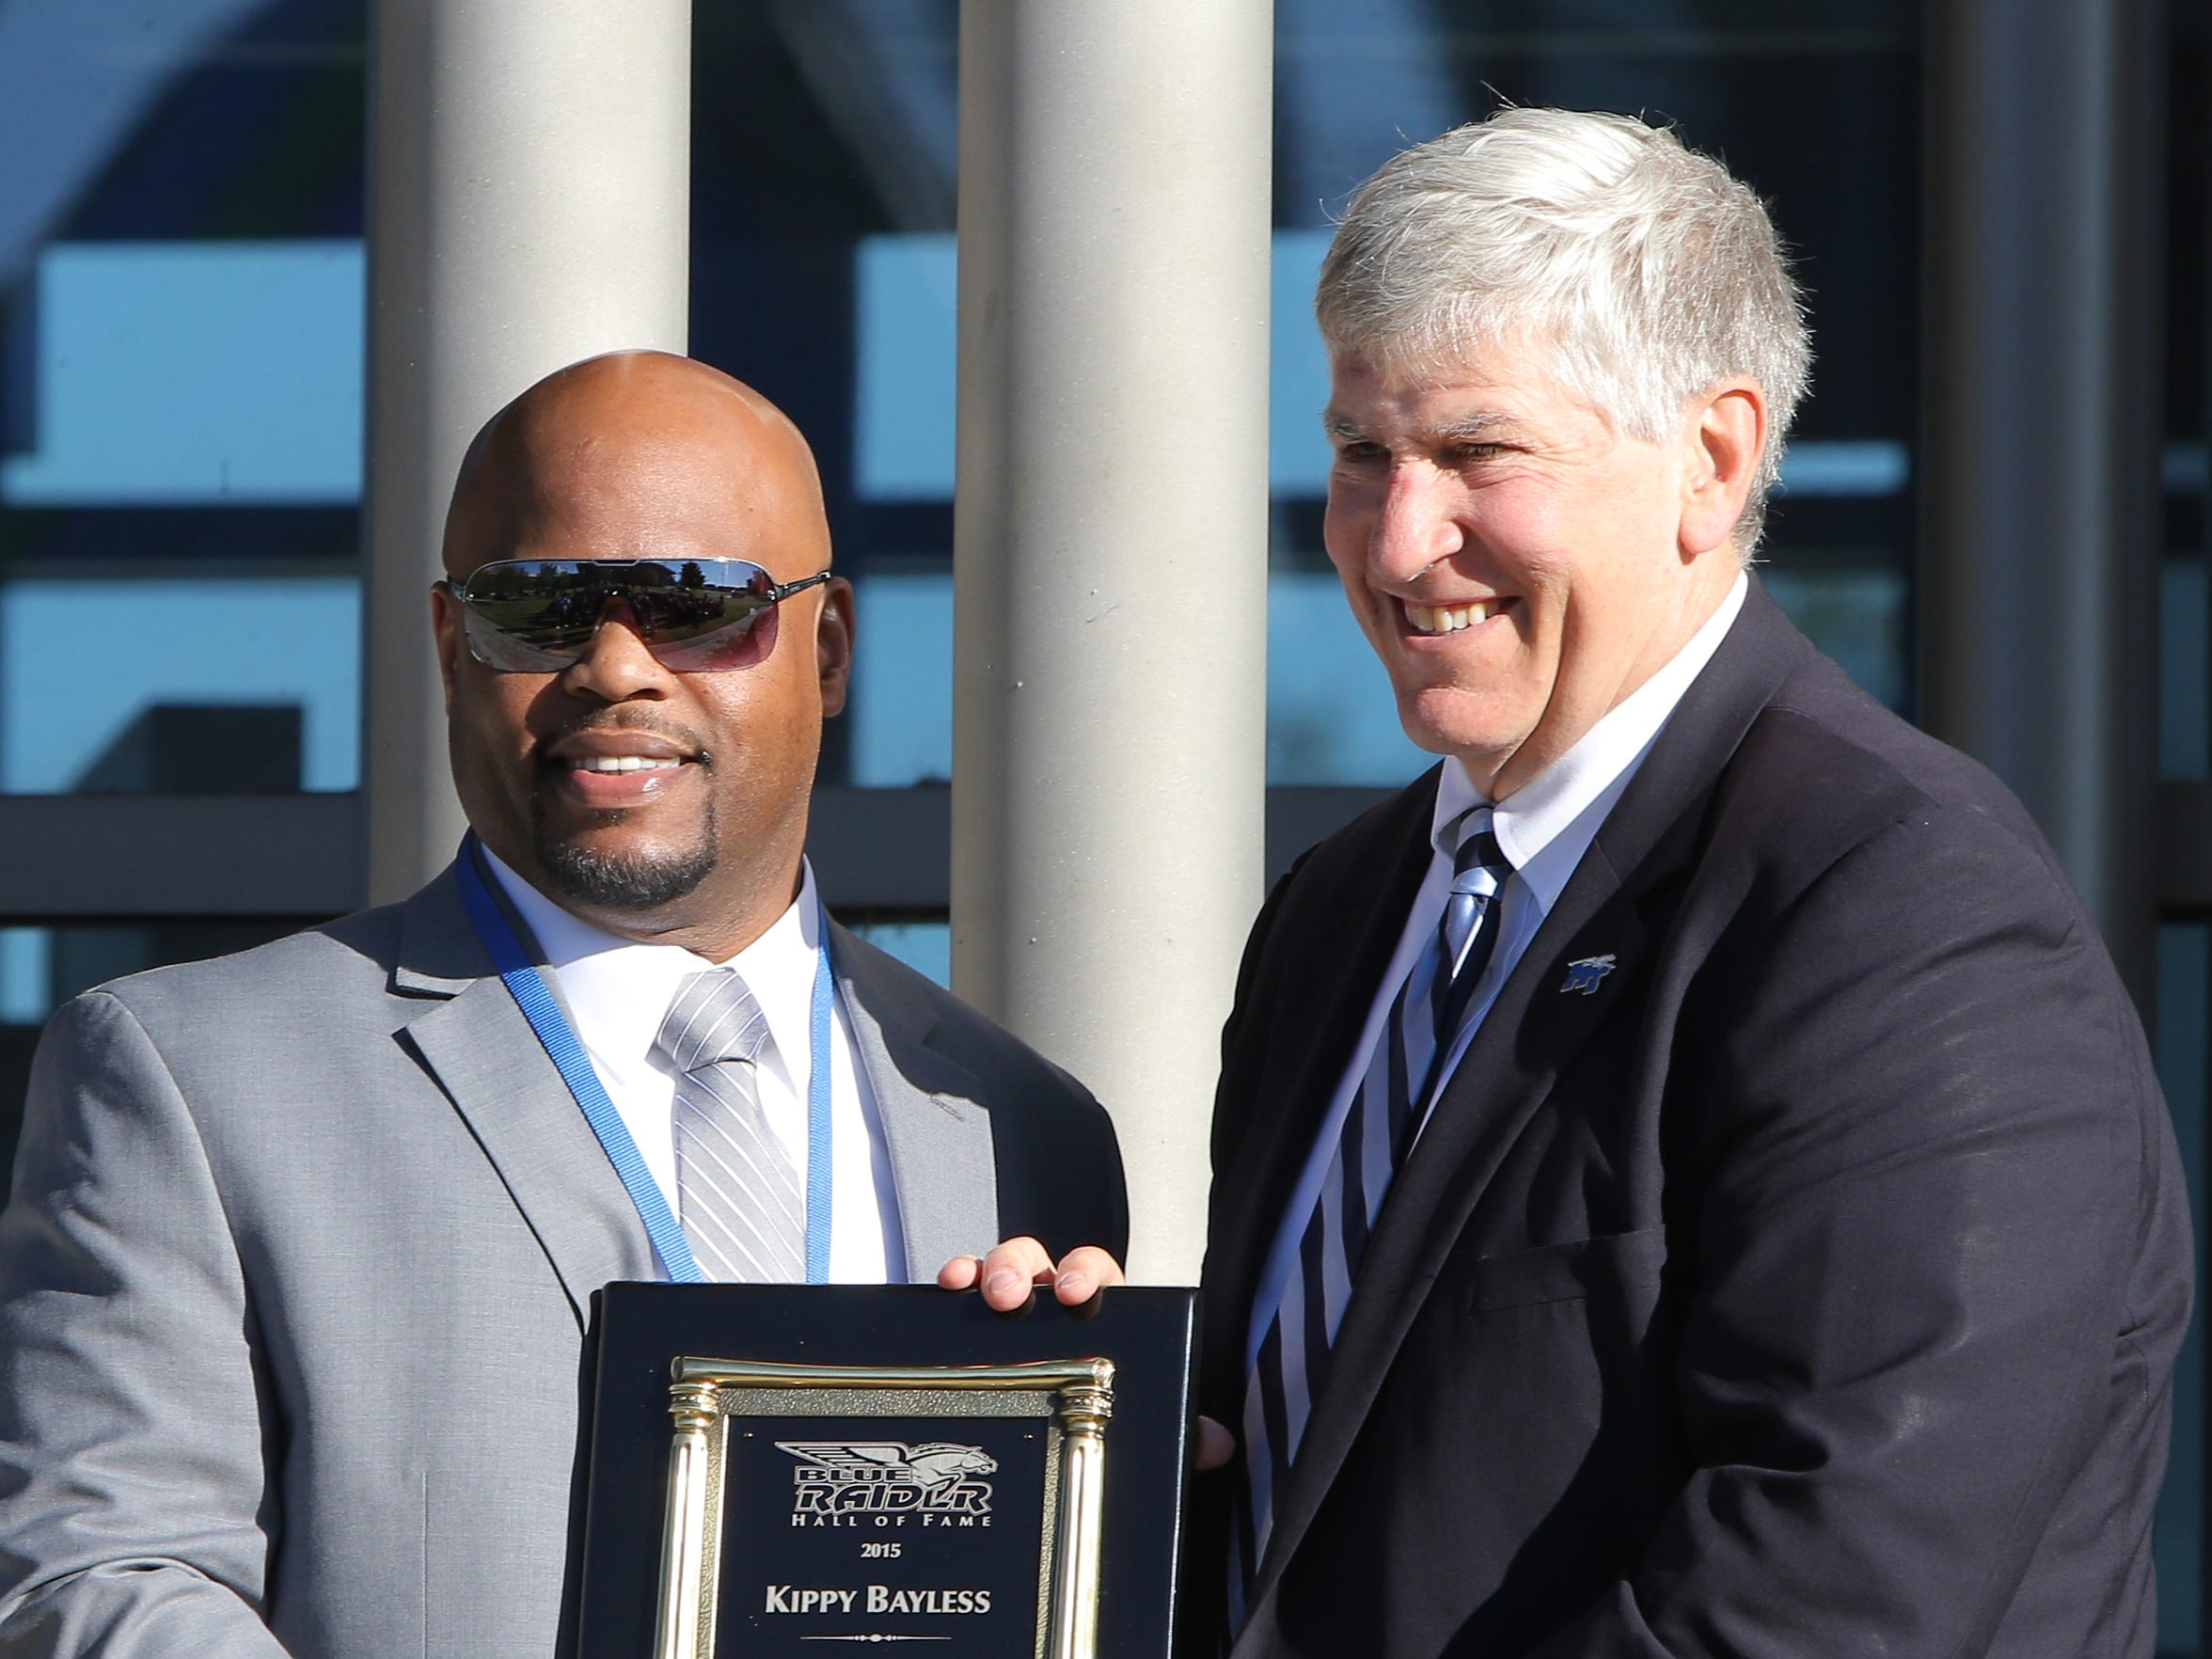 Kippy Bayless stands with Chris Massaro, MTSU director of athletics